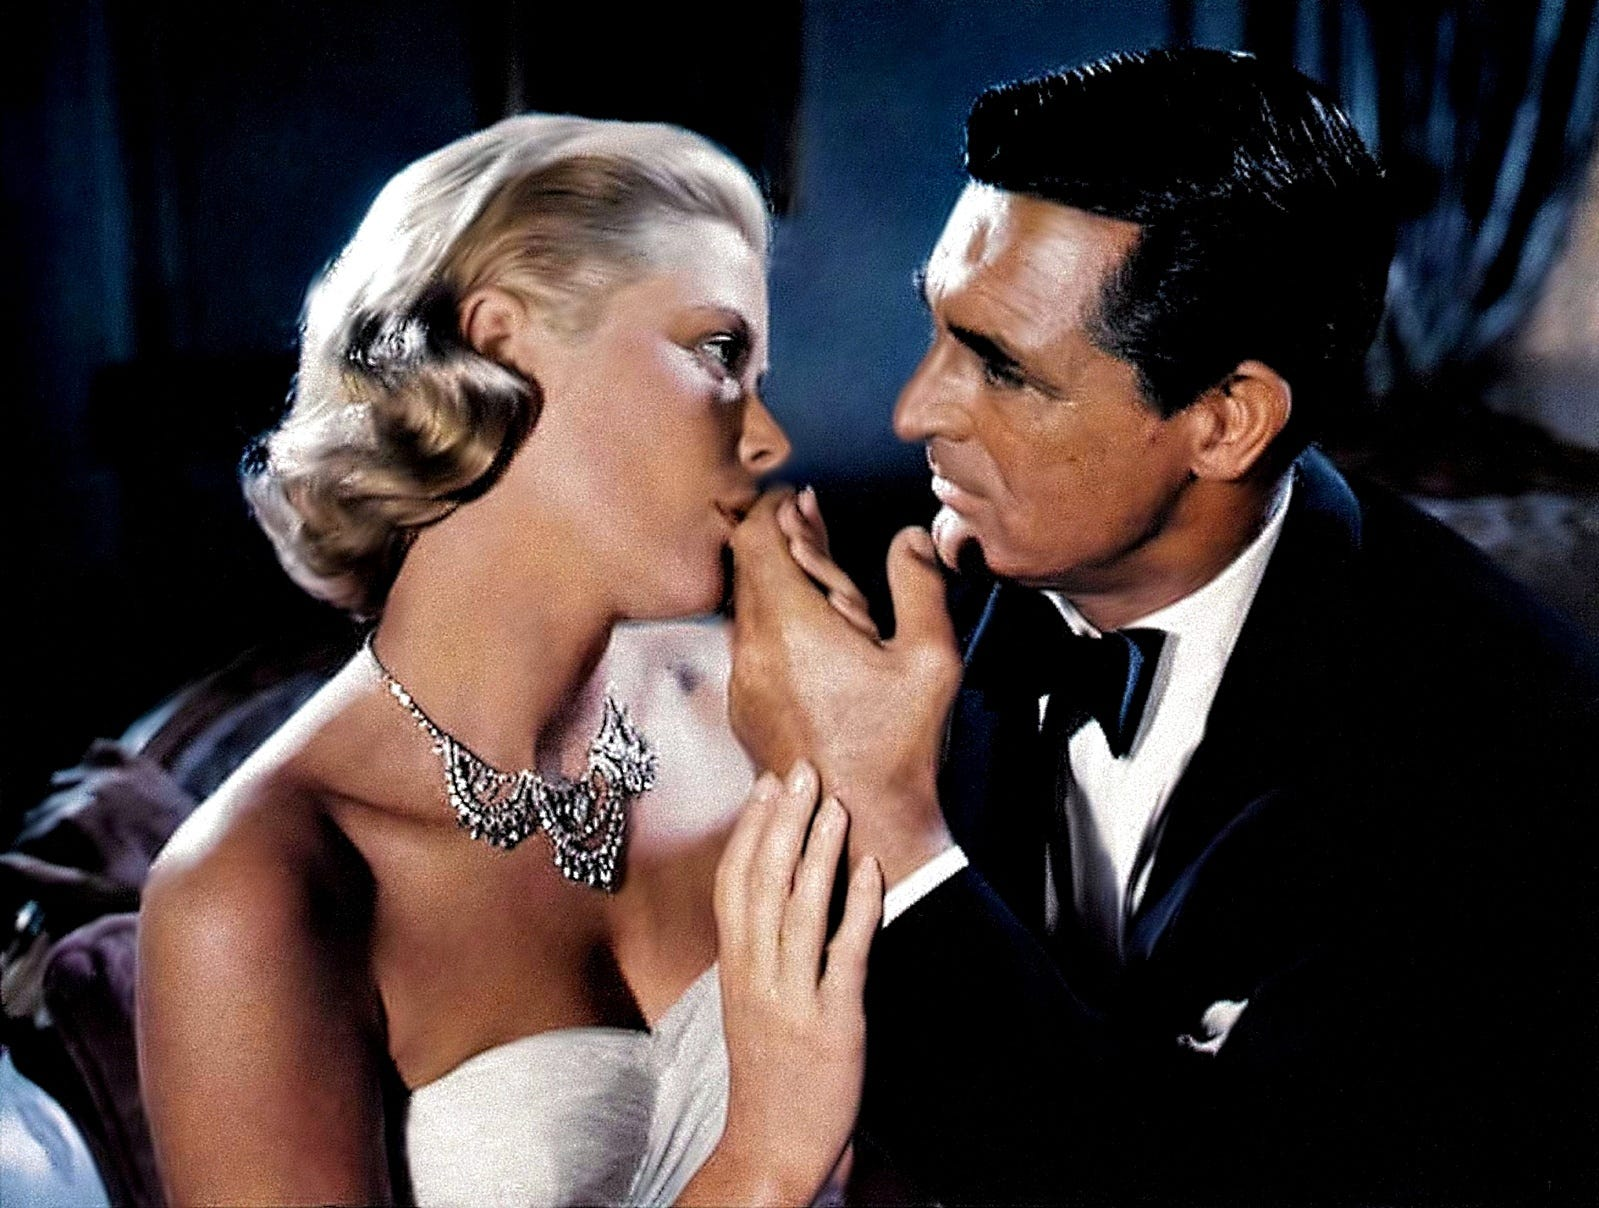 'To Catch a Thief': Grace Kelly and Cary Grant star in the 1955 Alfred Hitchcock thriller about a reformed jewel thief on the French Riviera. It doesn't get much more glam than that.